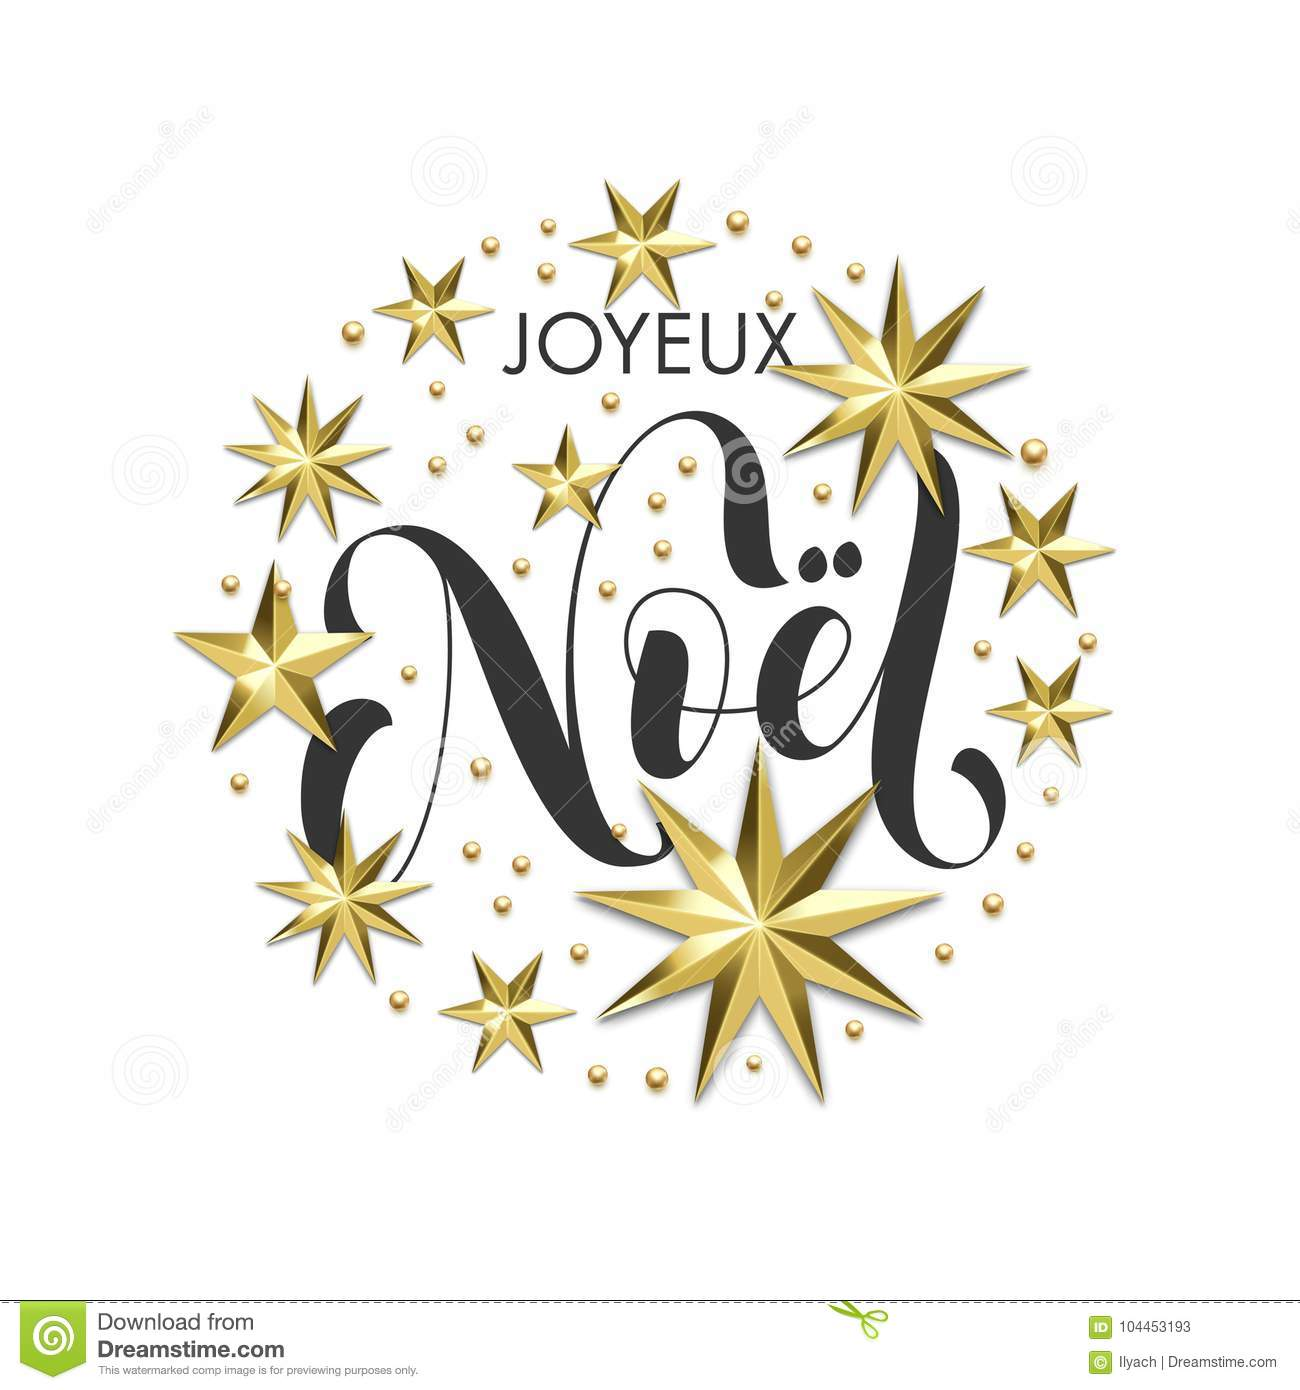 Joyeux Noel French Merry Christmas Golden Star Decoration